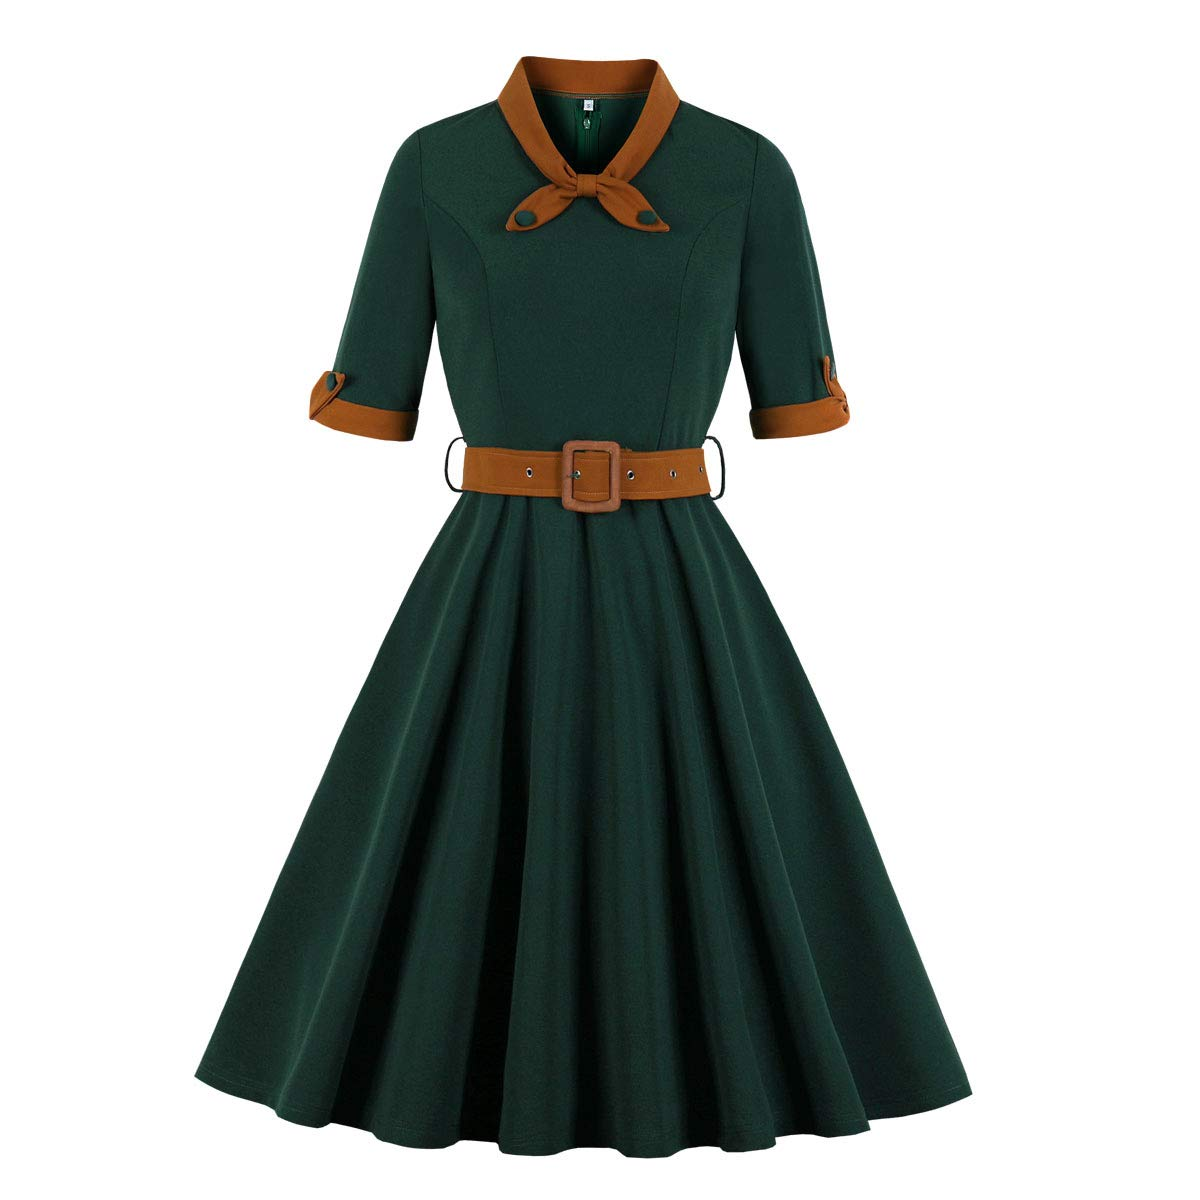 Vintage 50s Dresses: Best 1950s Dress Styles Wellwits Womens 1/2 Half Sleeves Sailor Tie Neck 1940s Retro Vintage Dress $24.98 AT vintagedancer.com